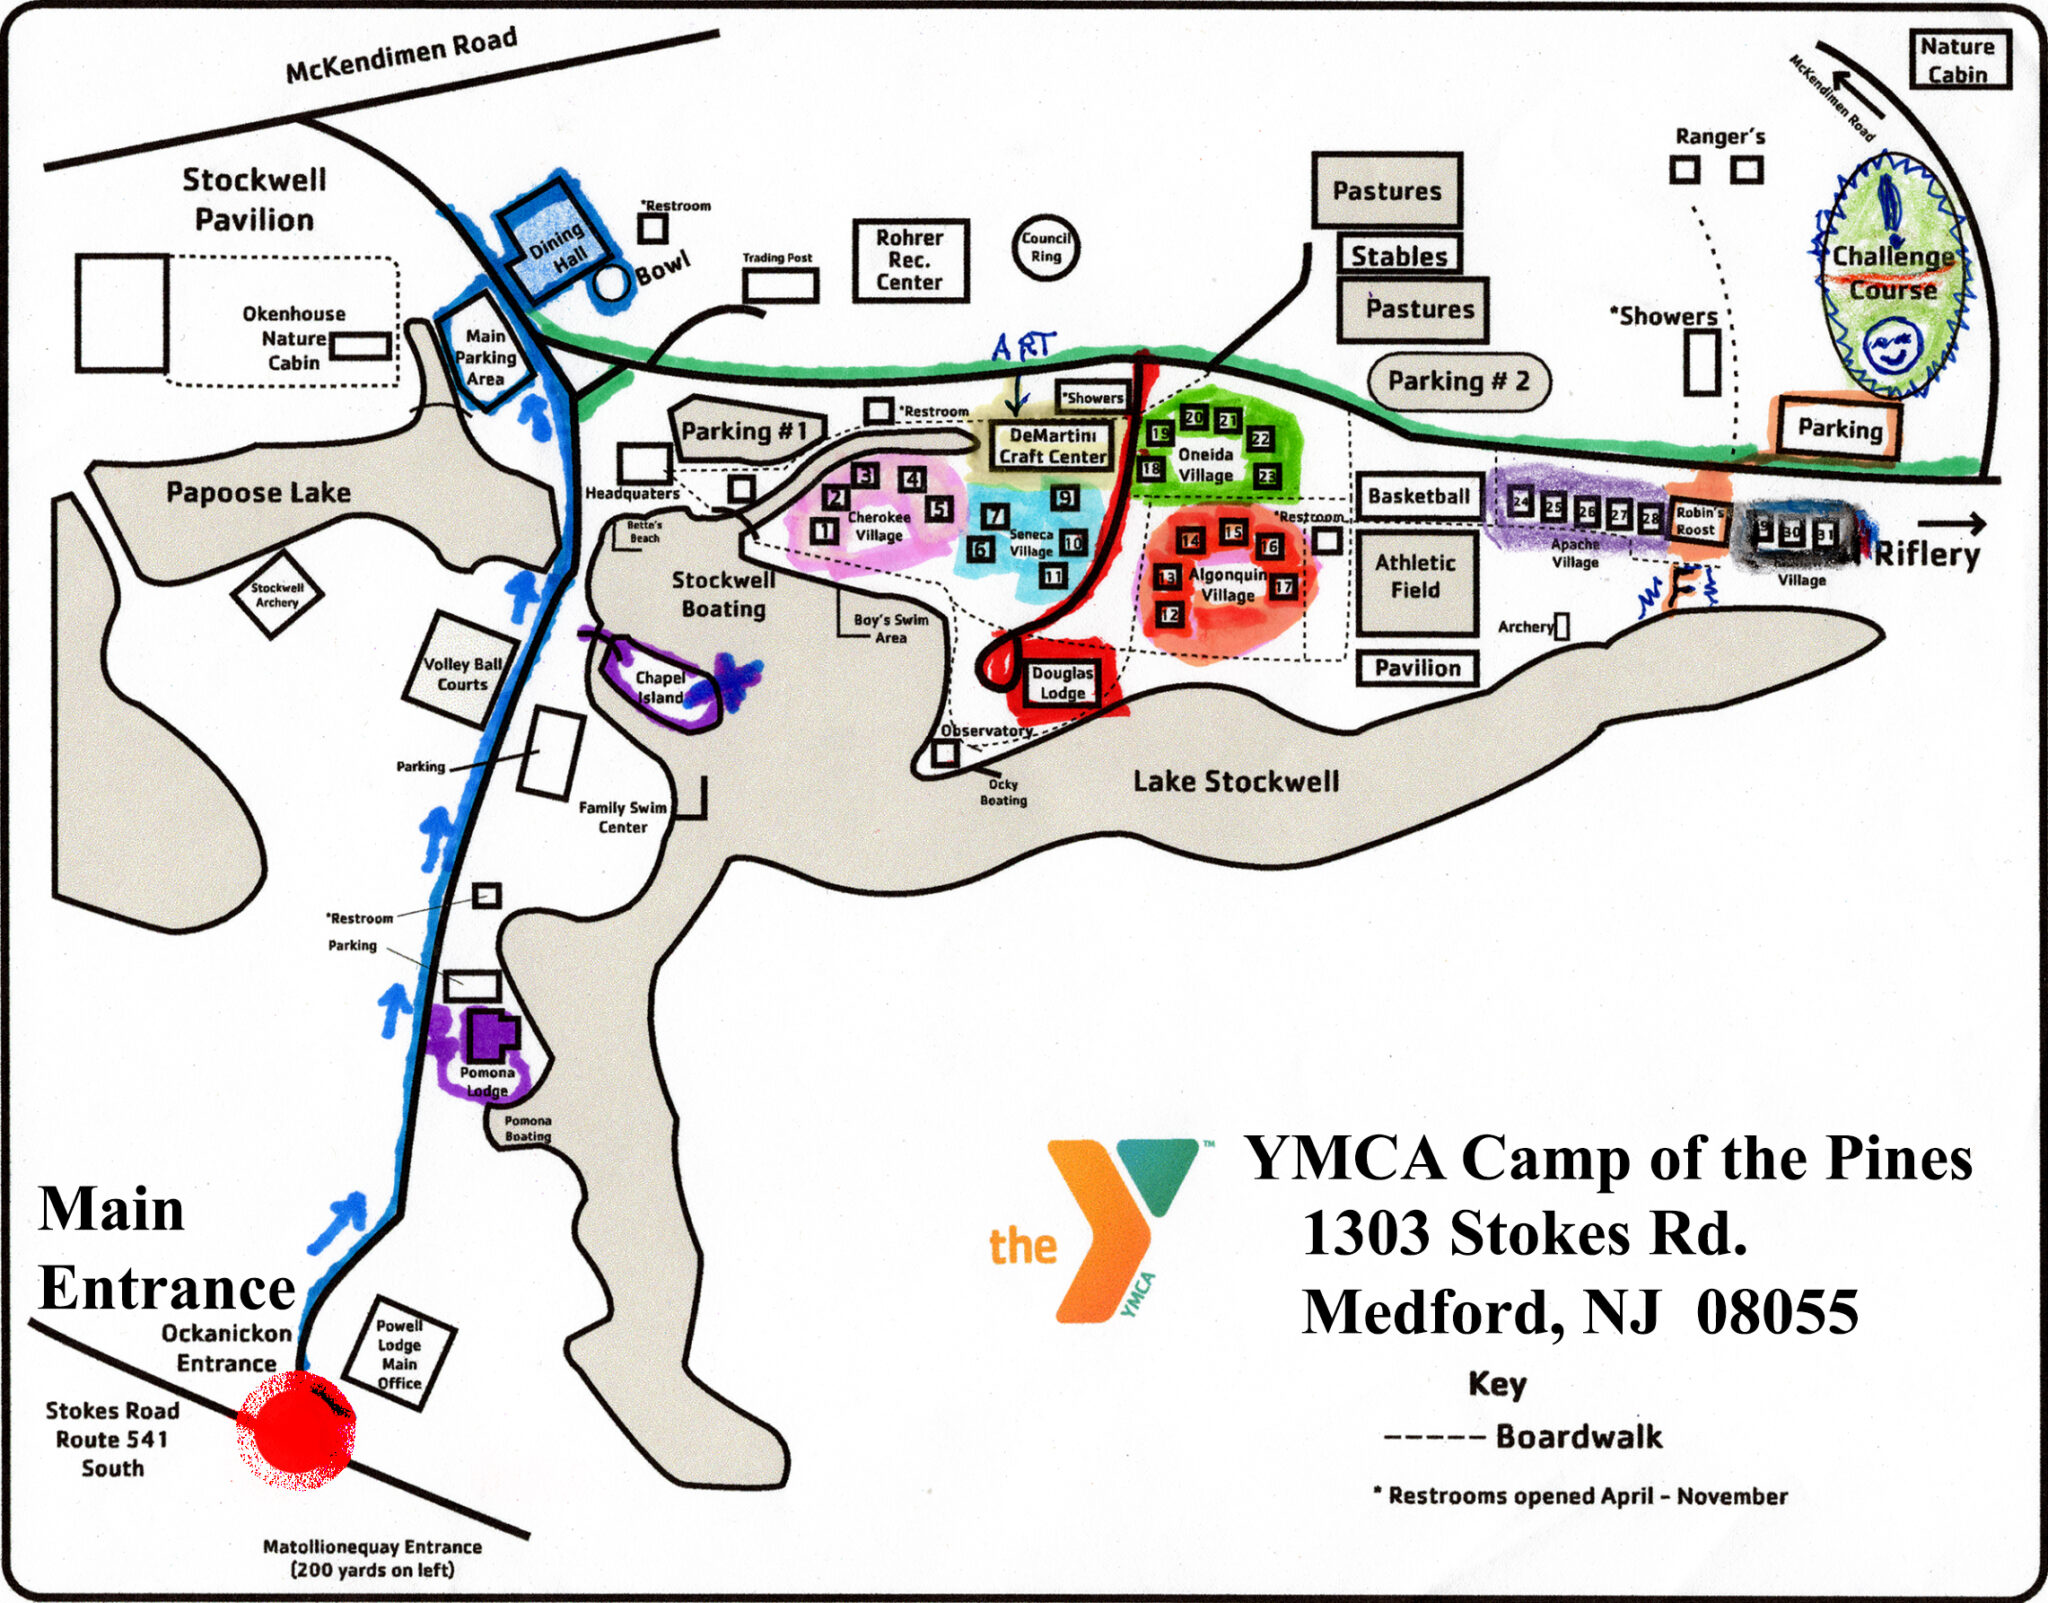 ymca camp of the pines map